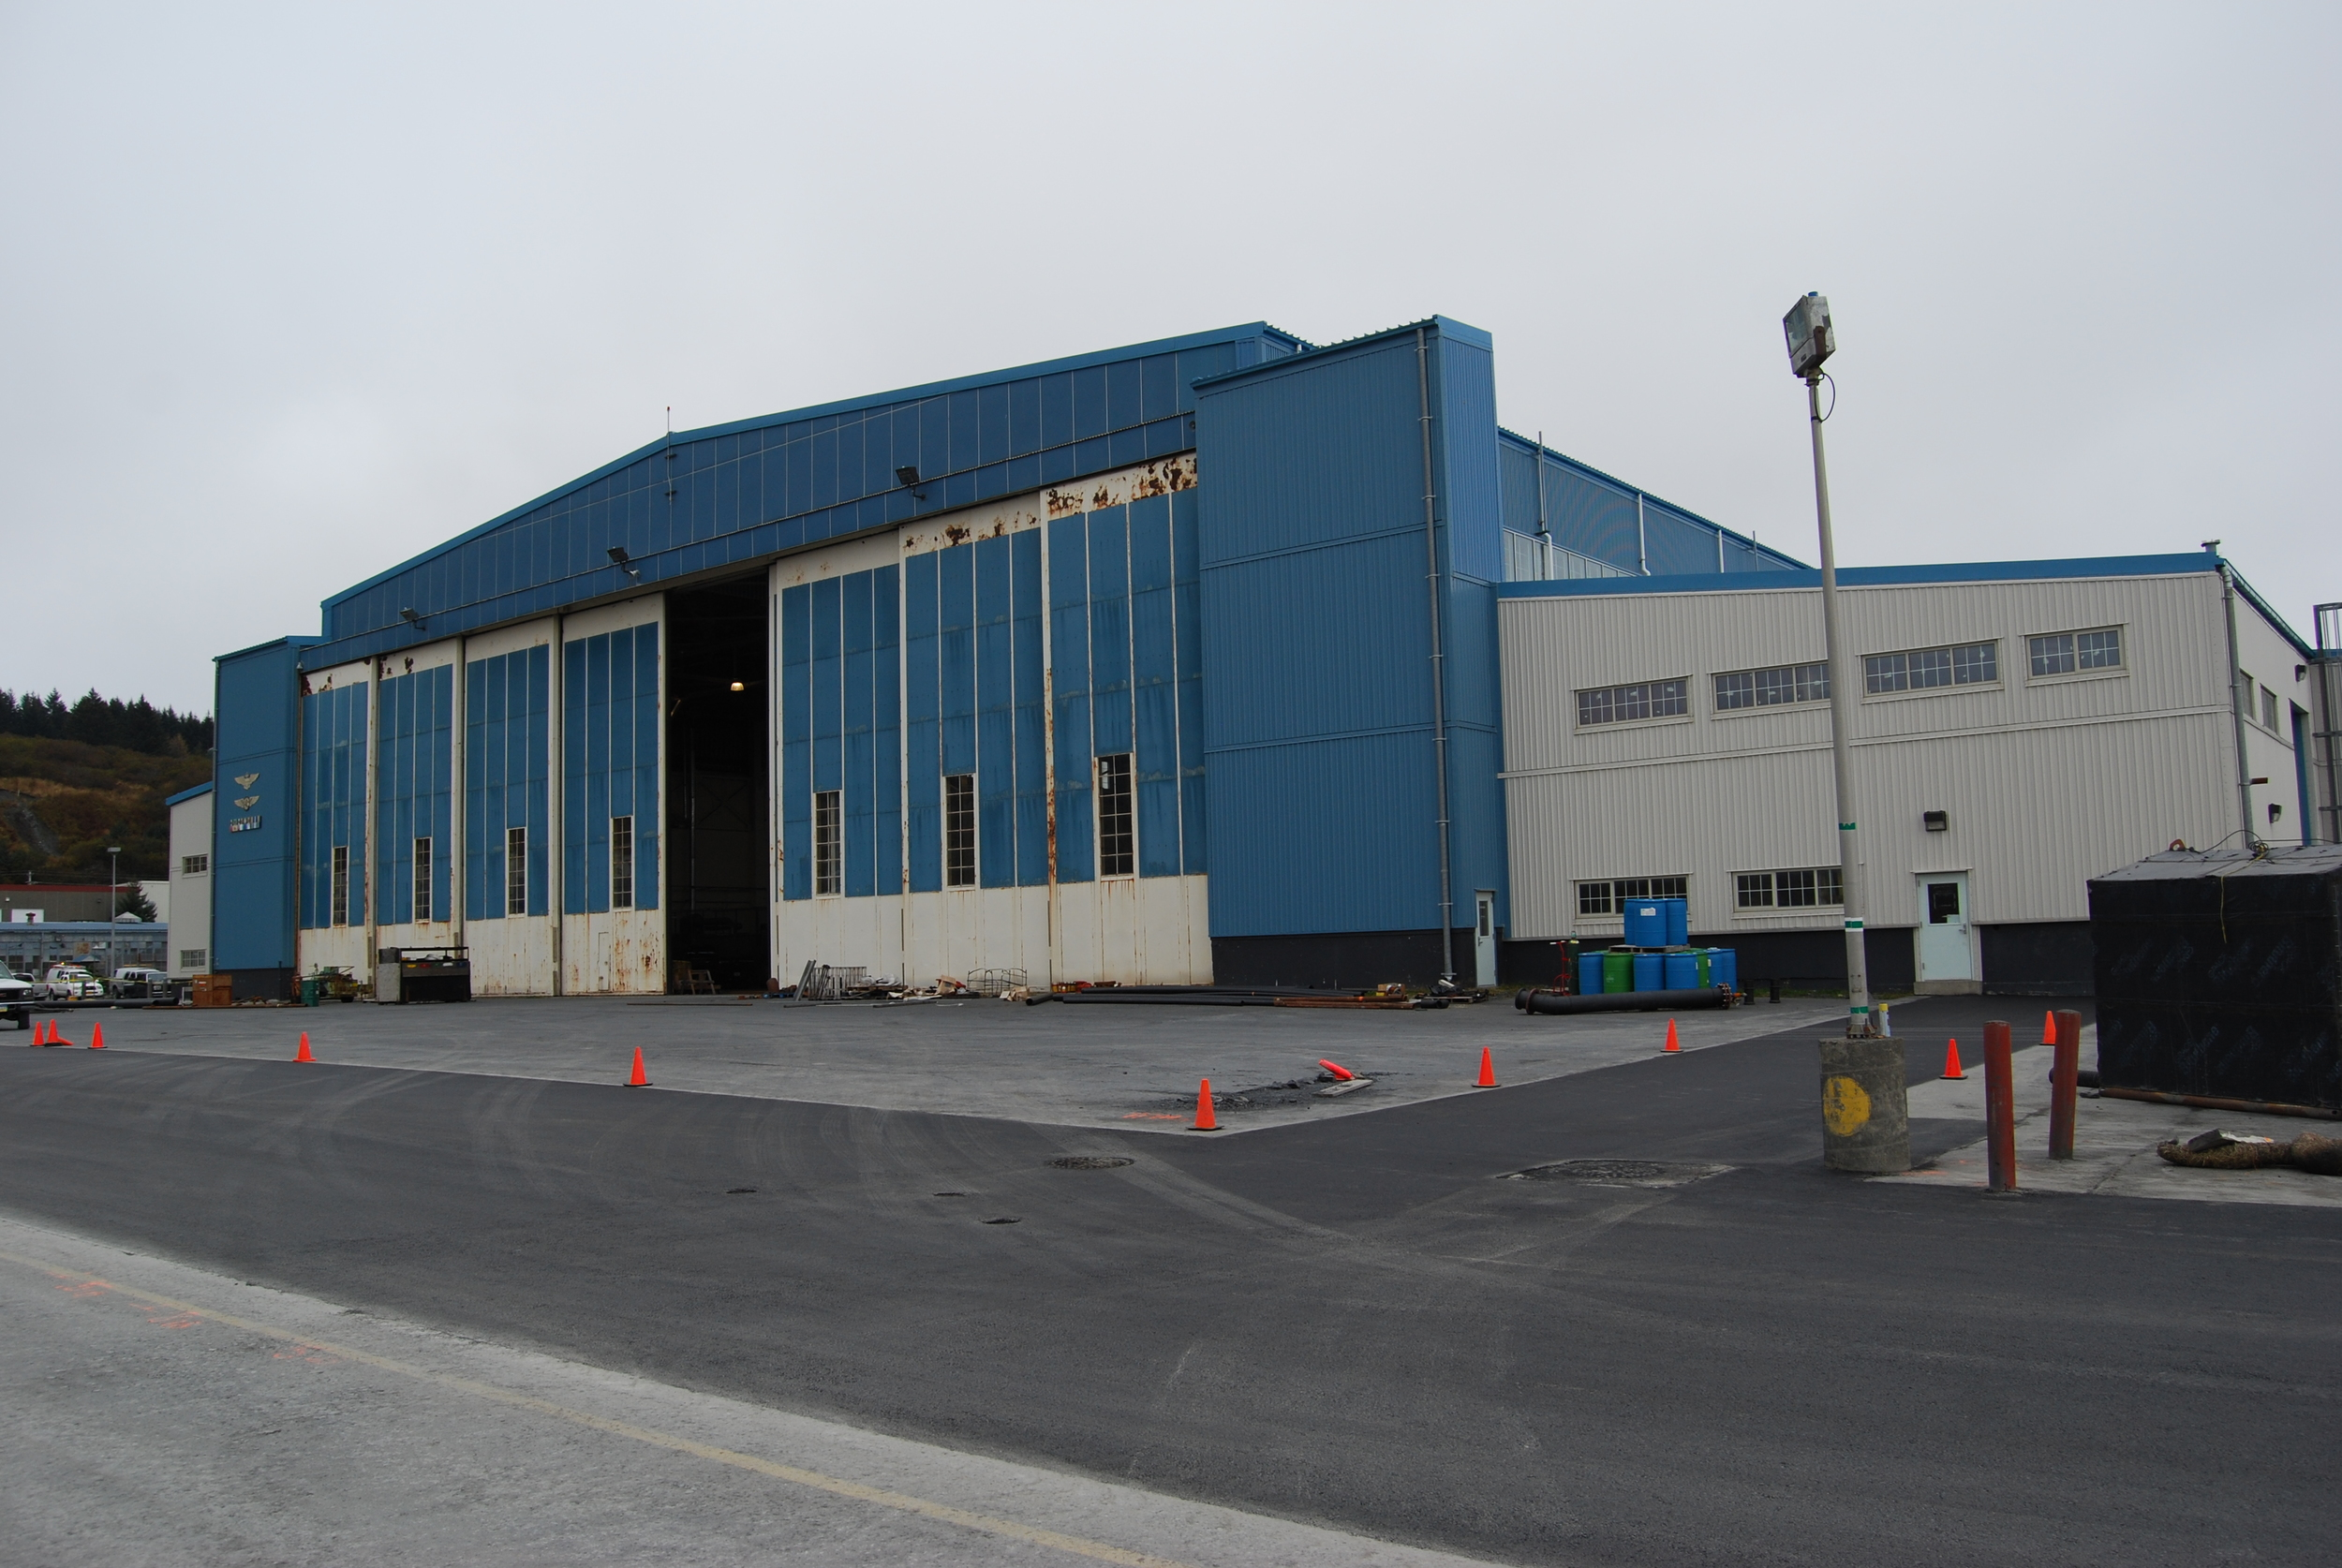 Existing Building 20